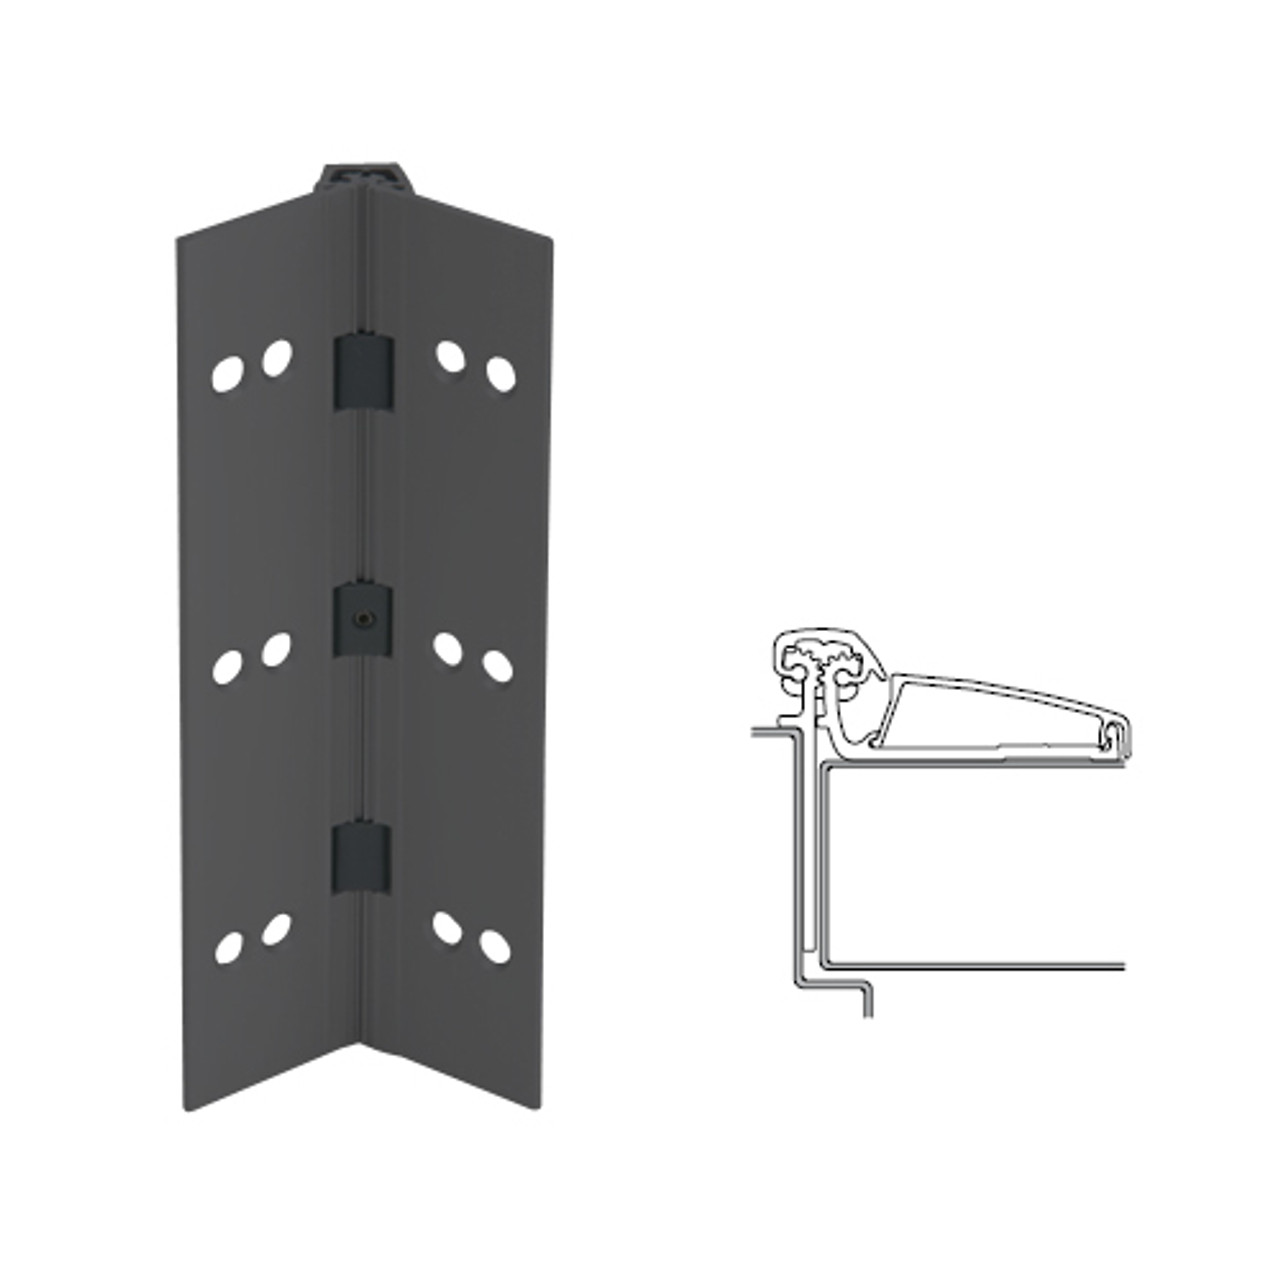 046XY-315AN-95-TEKWD IVES Adjustable Half Surface Continuous Geared Hinges with Wood Screws in Anodized Black